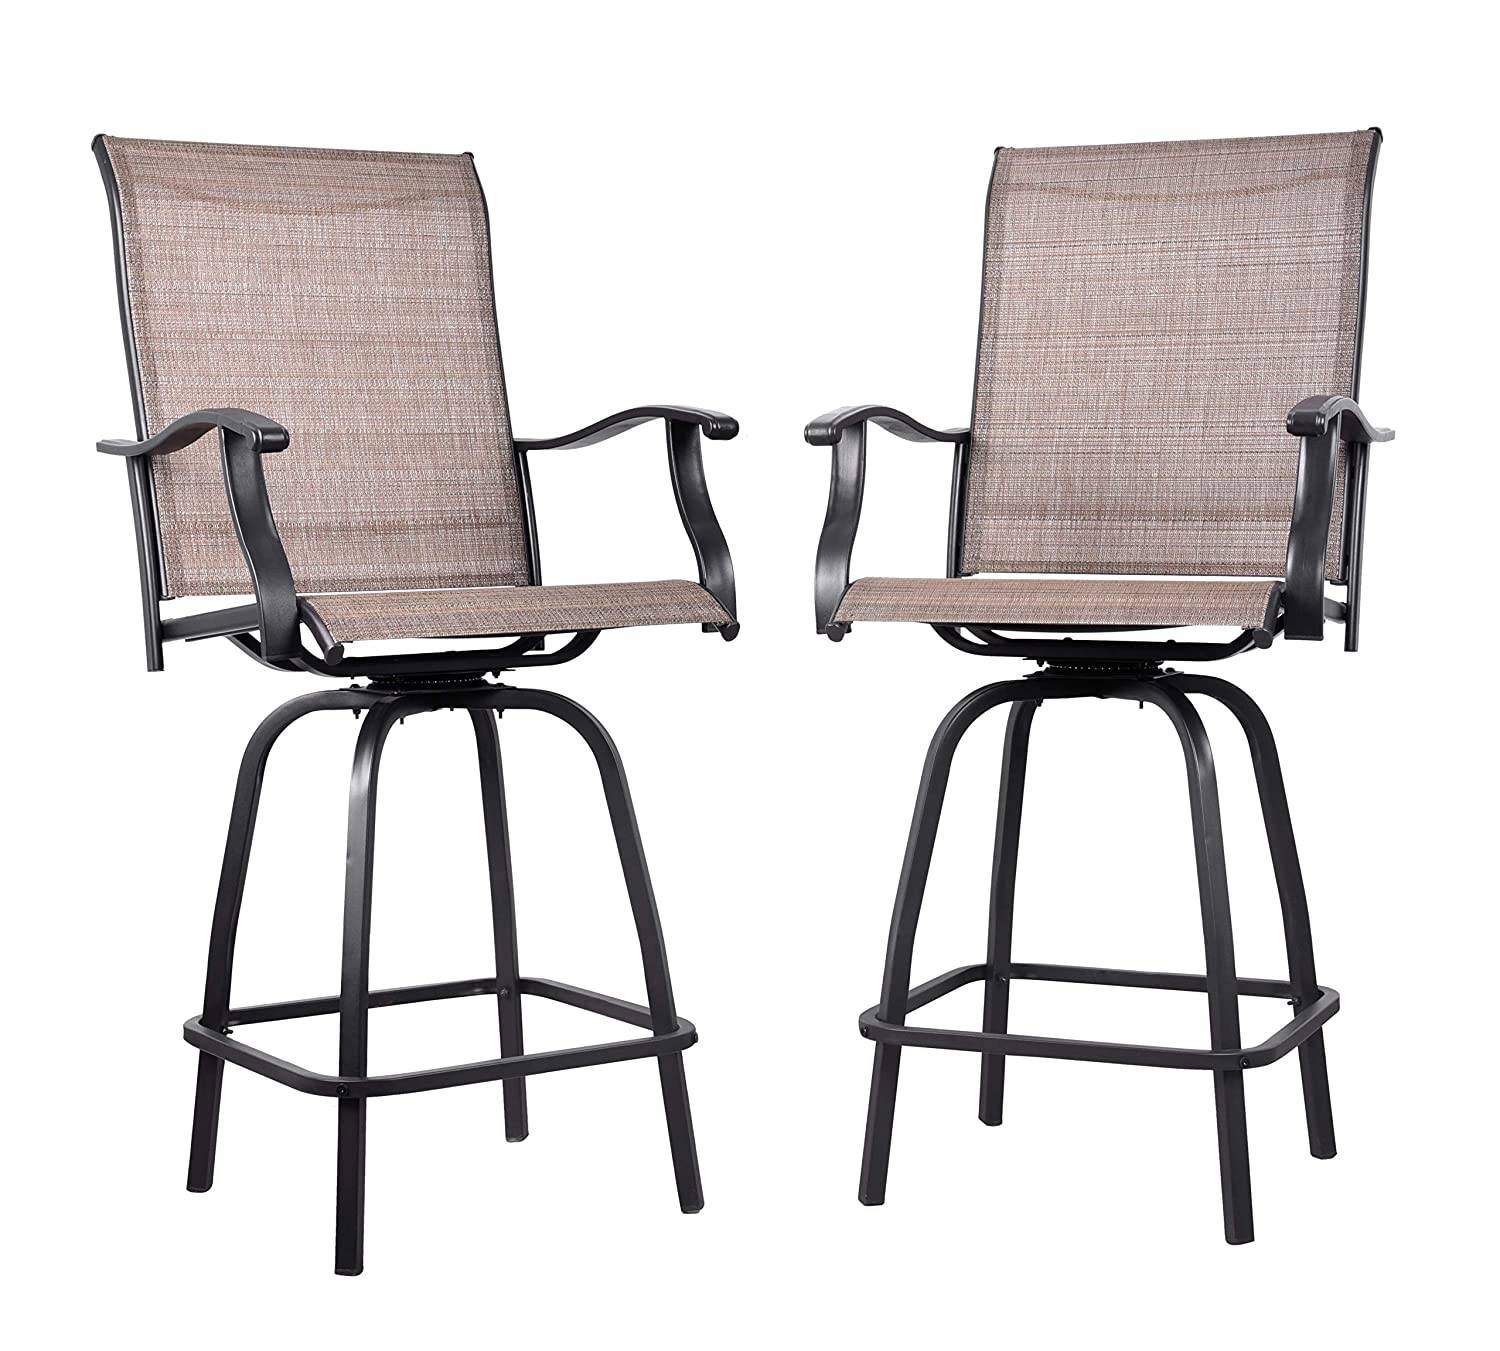 EMERIT Outdoor Swivel Bar Stools Bar Height Patio Chairs, Set of 2